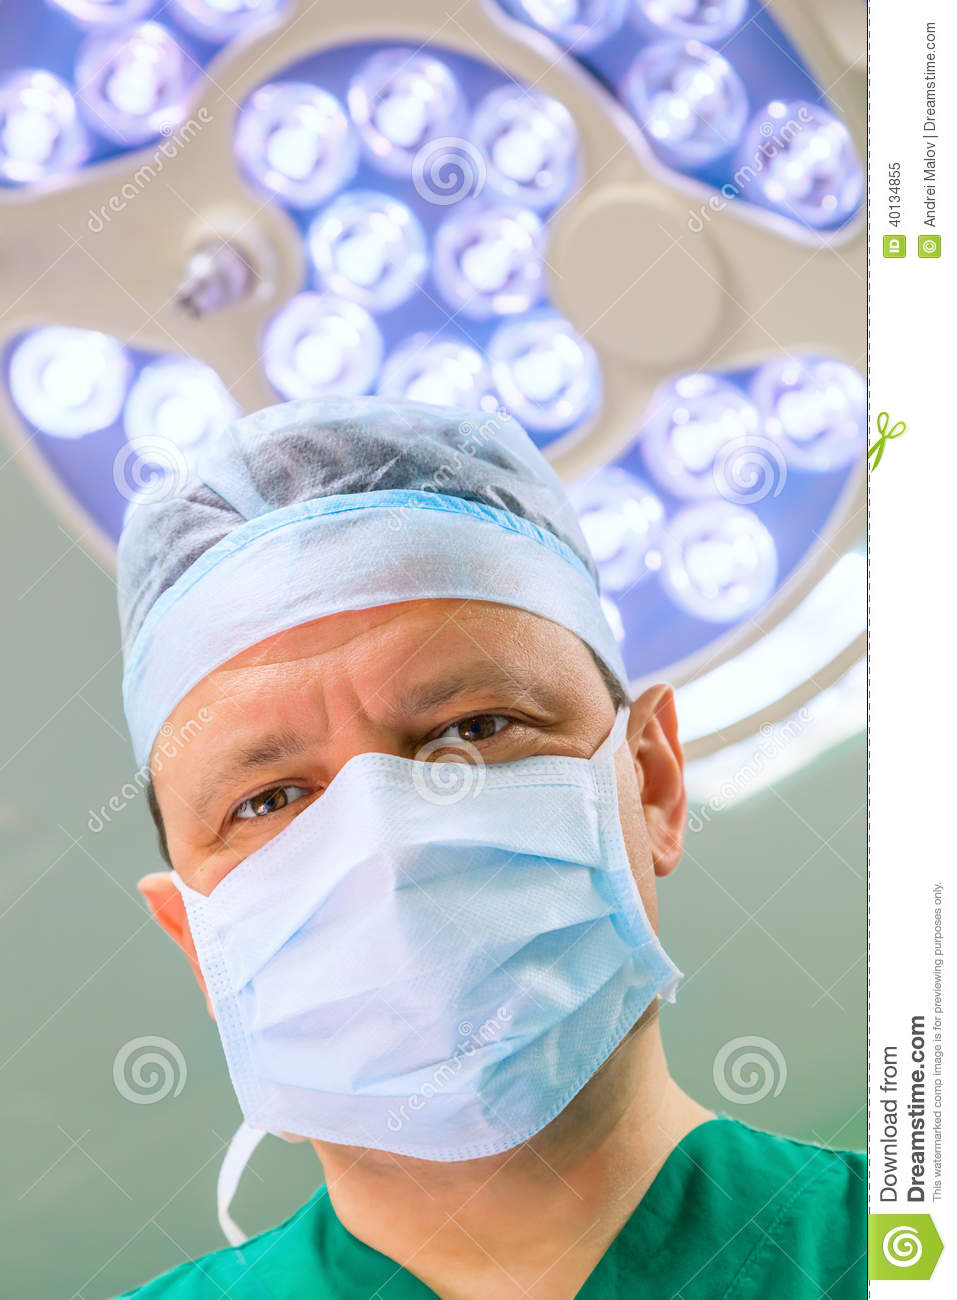 Surgeon in operation room with lamp on background.